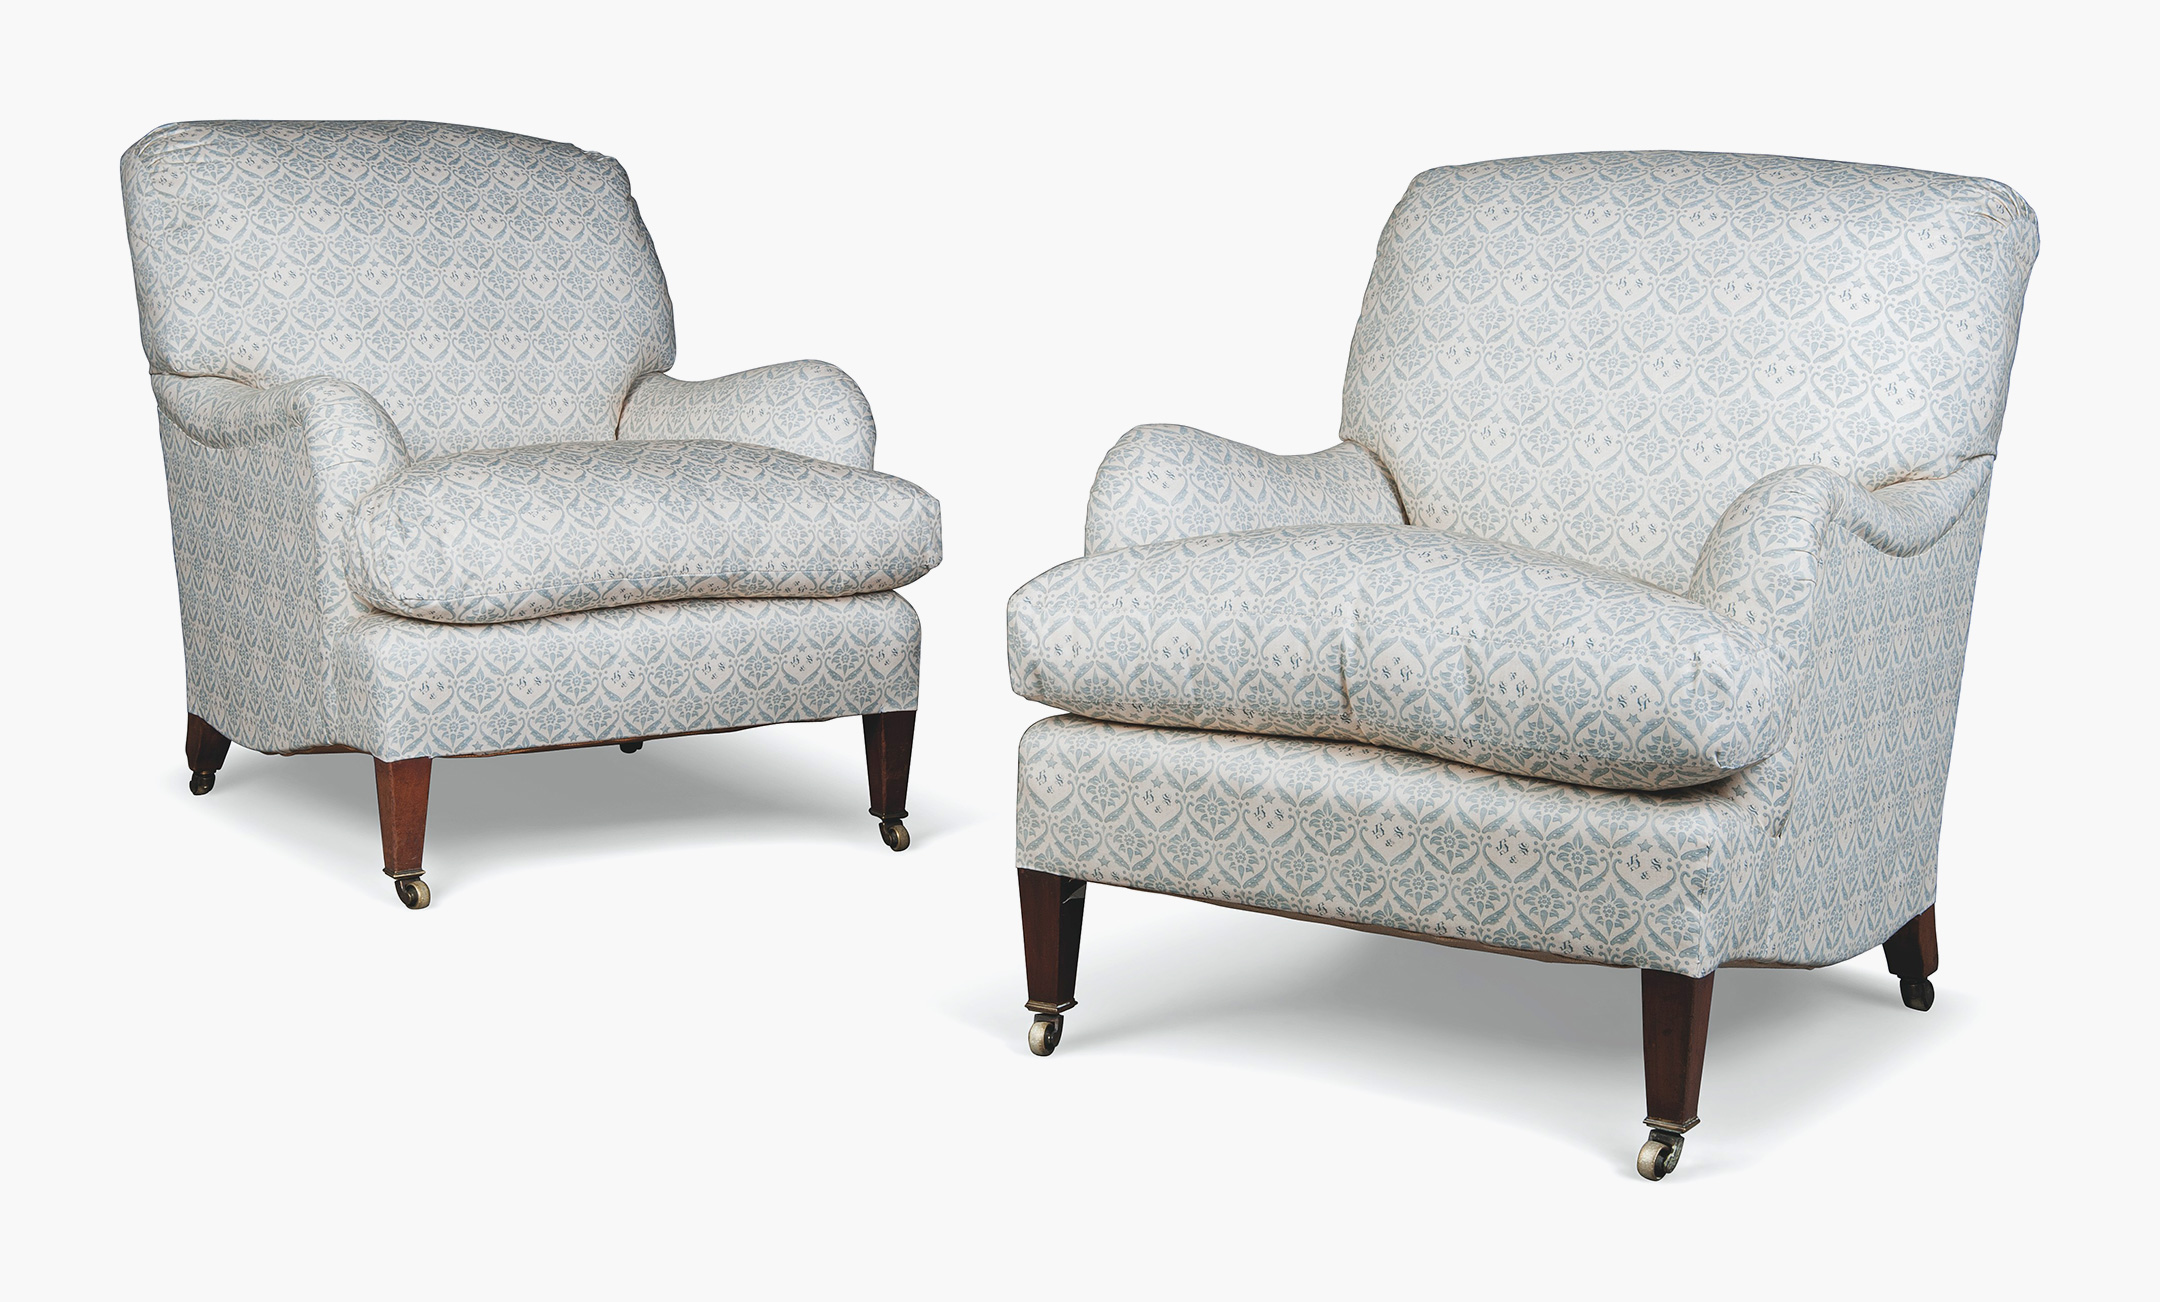 Late Victorian Or Edwardian Easy Armchairs By Howard U0026 Sons Ltd. Estimate:  £5,000 8,000. This Lot Is Offered In The Interiors Sale On 17 August At ...